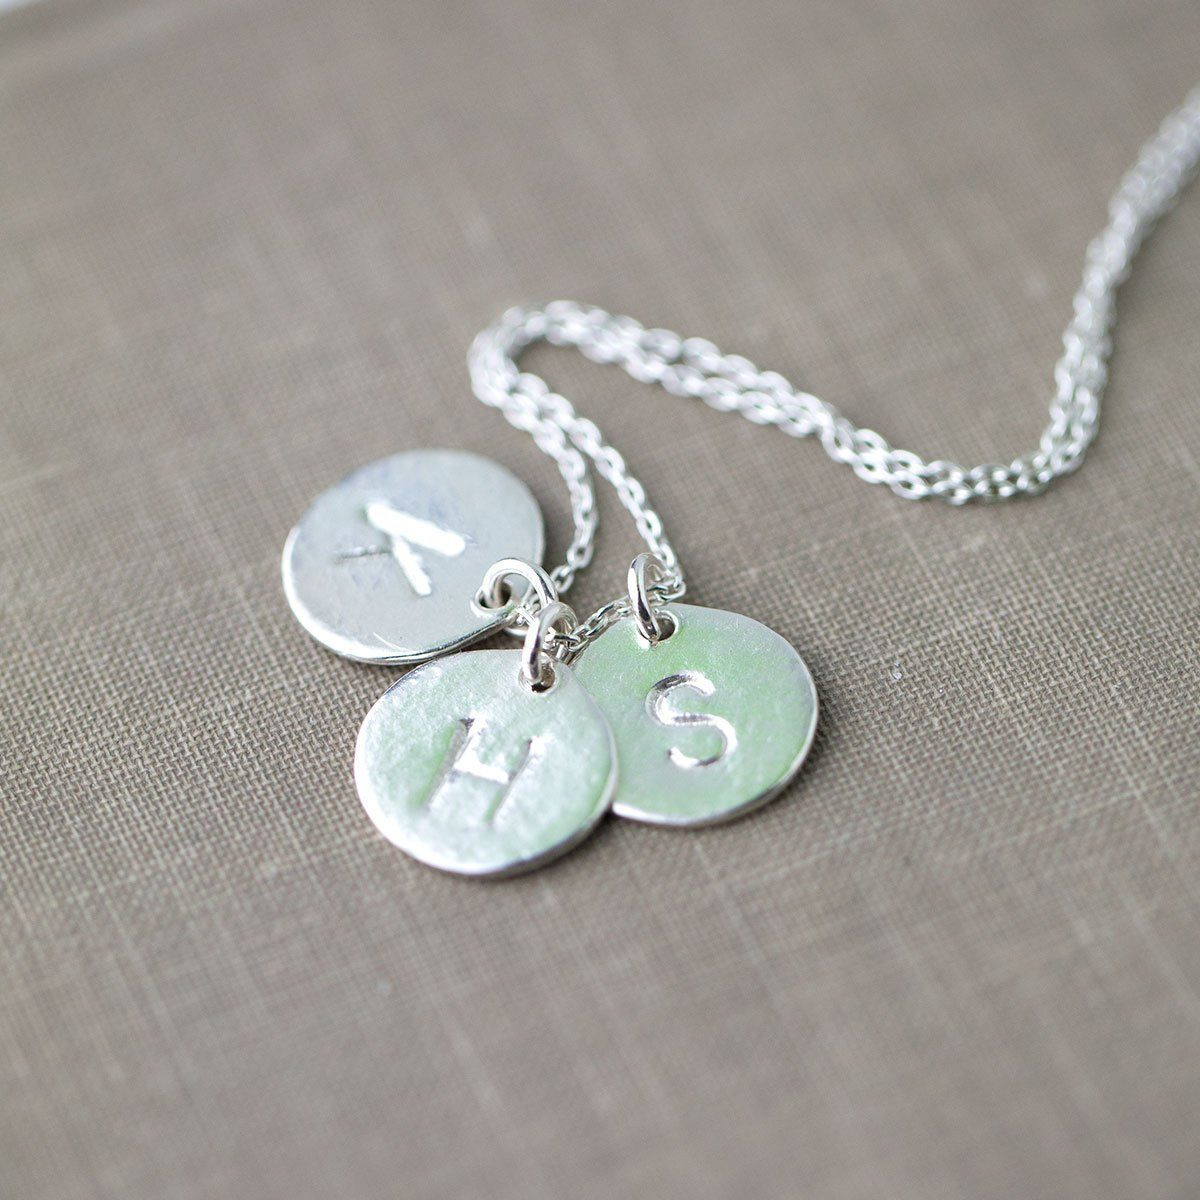 Large Monogram Disk Necklace - Handmade Jewelry by Burnish